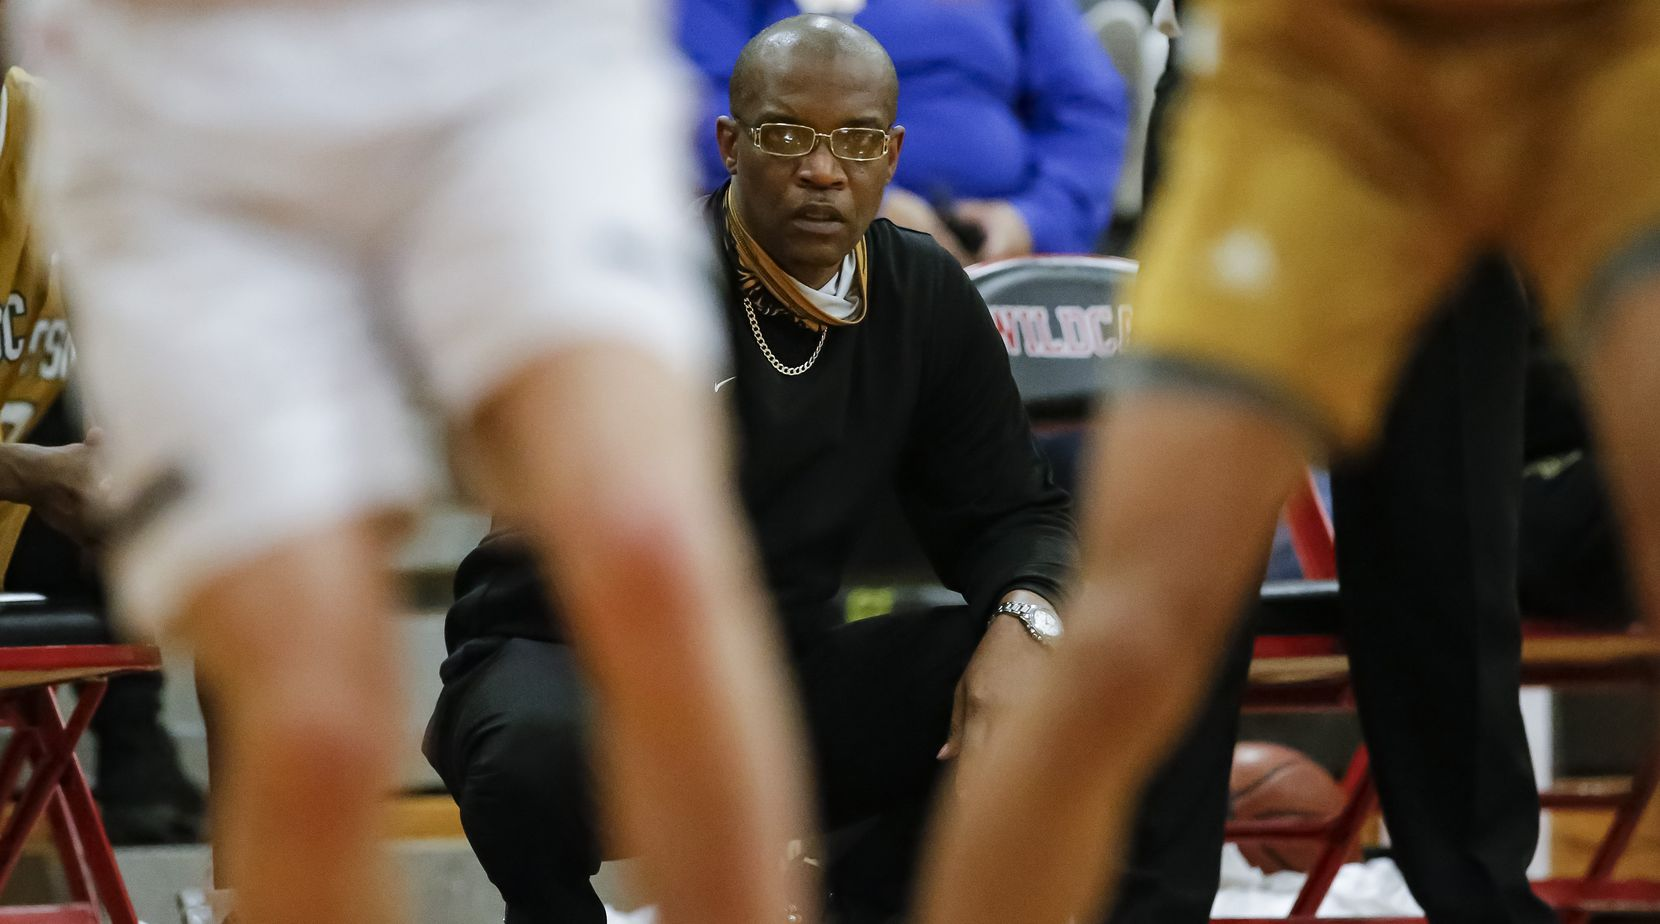 South Oak Cliff head coach James Mays II  looks on during the second half of a Class 5A area-round playoff basketball game against Lovejoy at Lake Highlands High School in Dallas, Wednesday, February 24, 2021. South oak Cliff won 46-44. (Brandon Wade/Special Contributor)